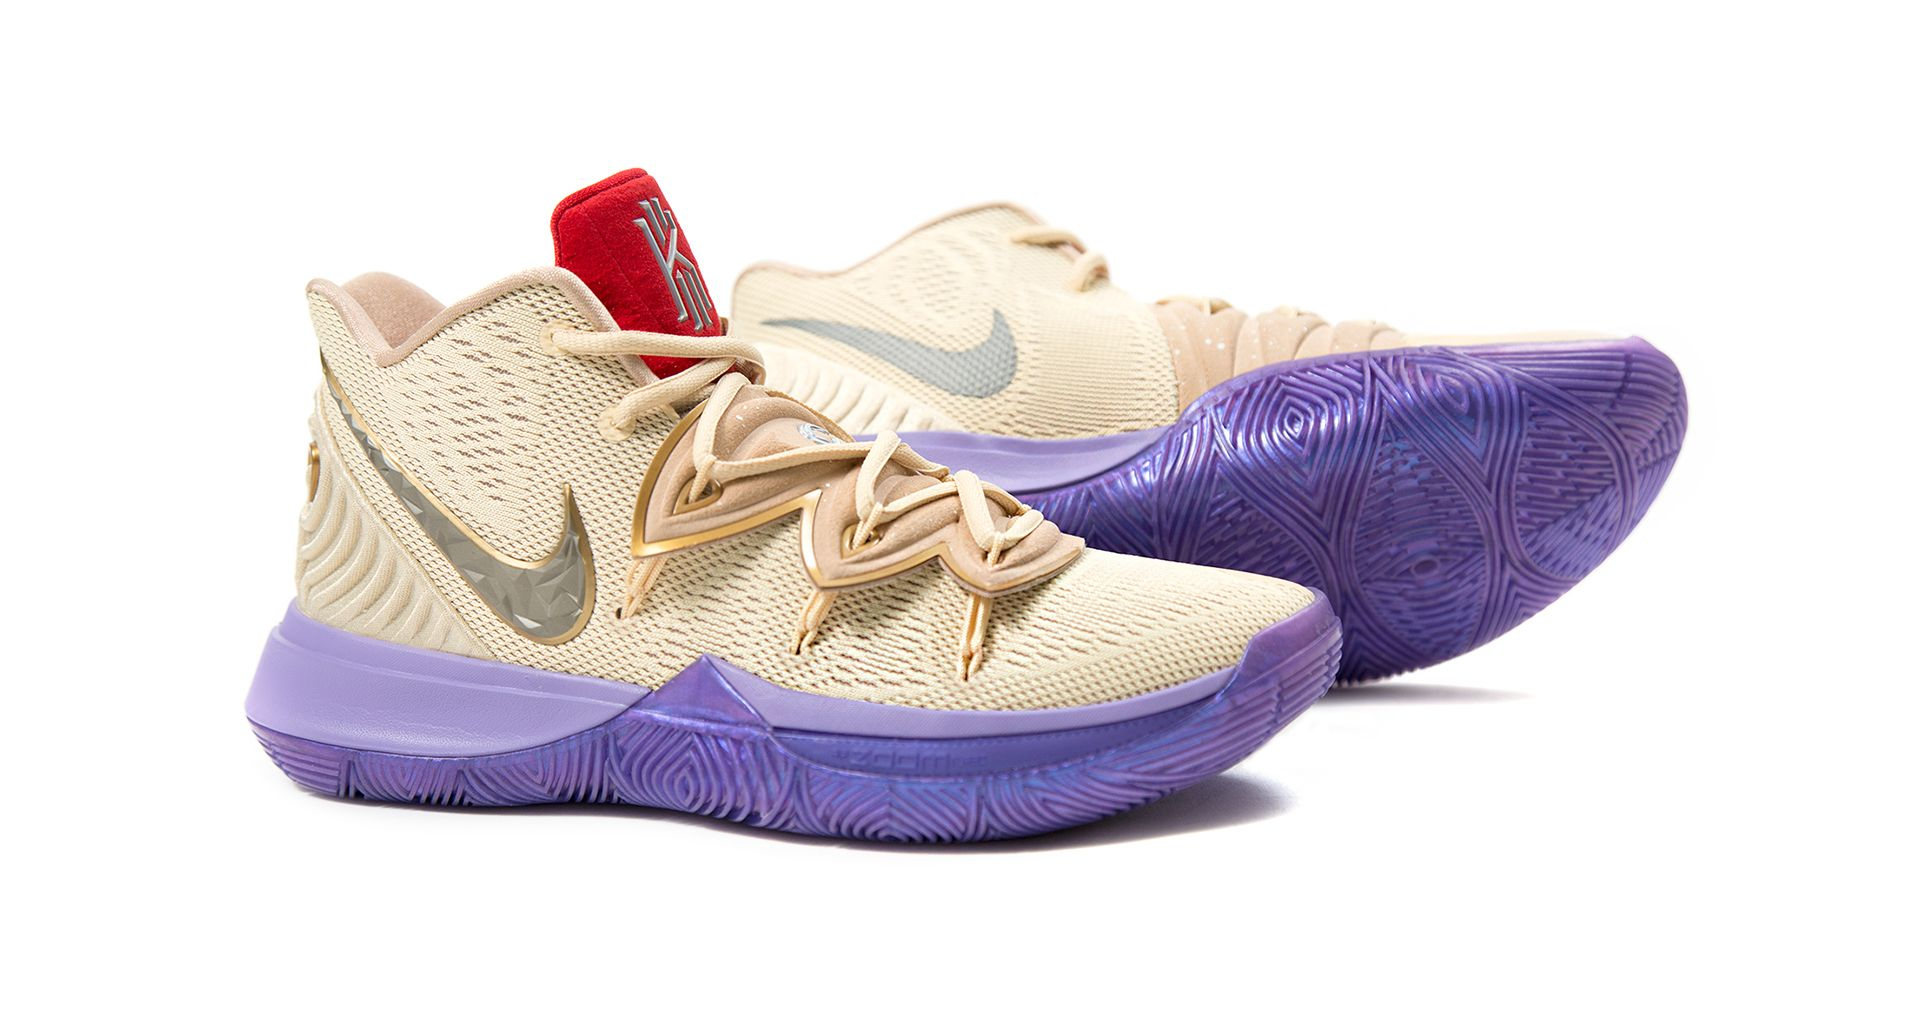 42dd3ad935d KYRIE 5. CONCEPTS. $140. Nike Kyrie 5 Concepts Ikhet 'Multicolor' Release  Date ...